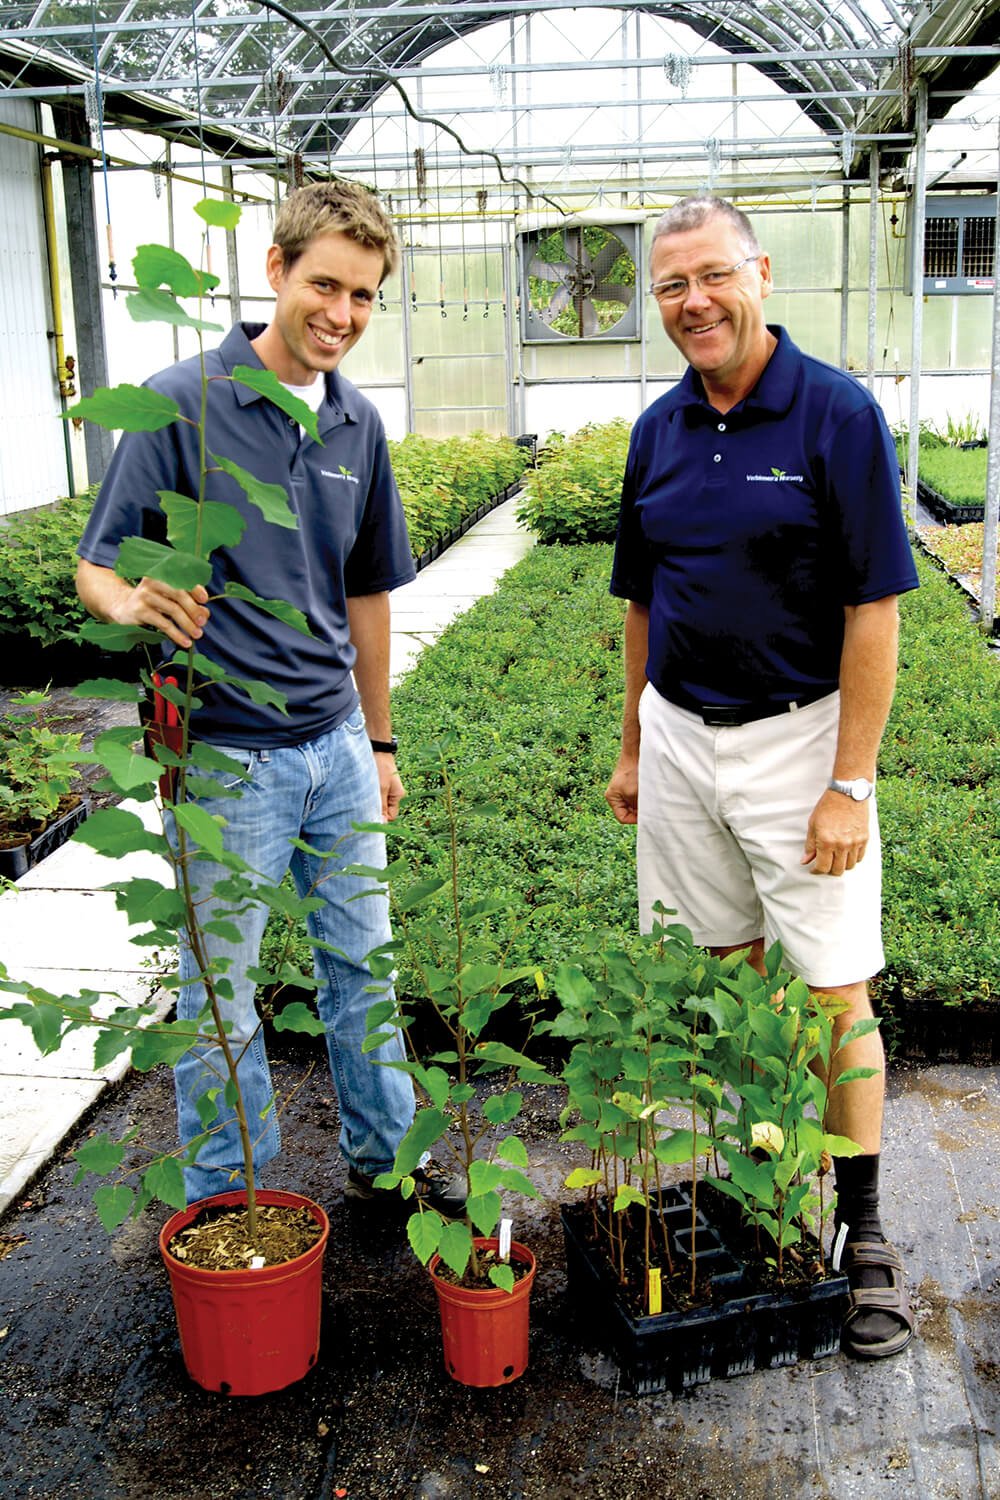 two men in a greenhouse showing off plants